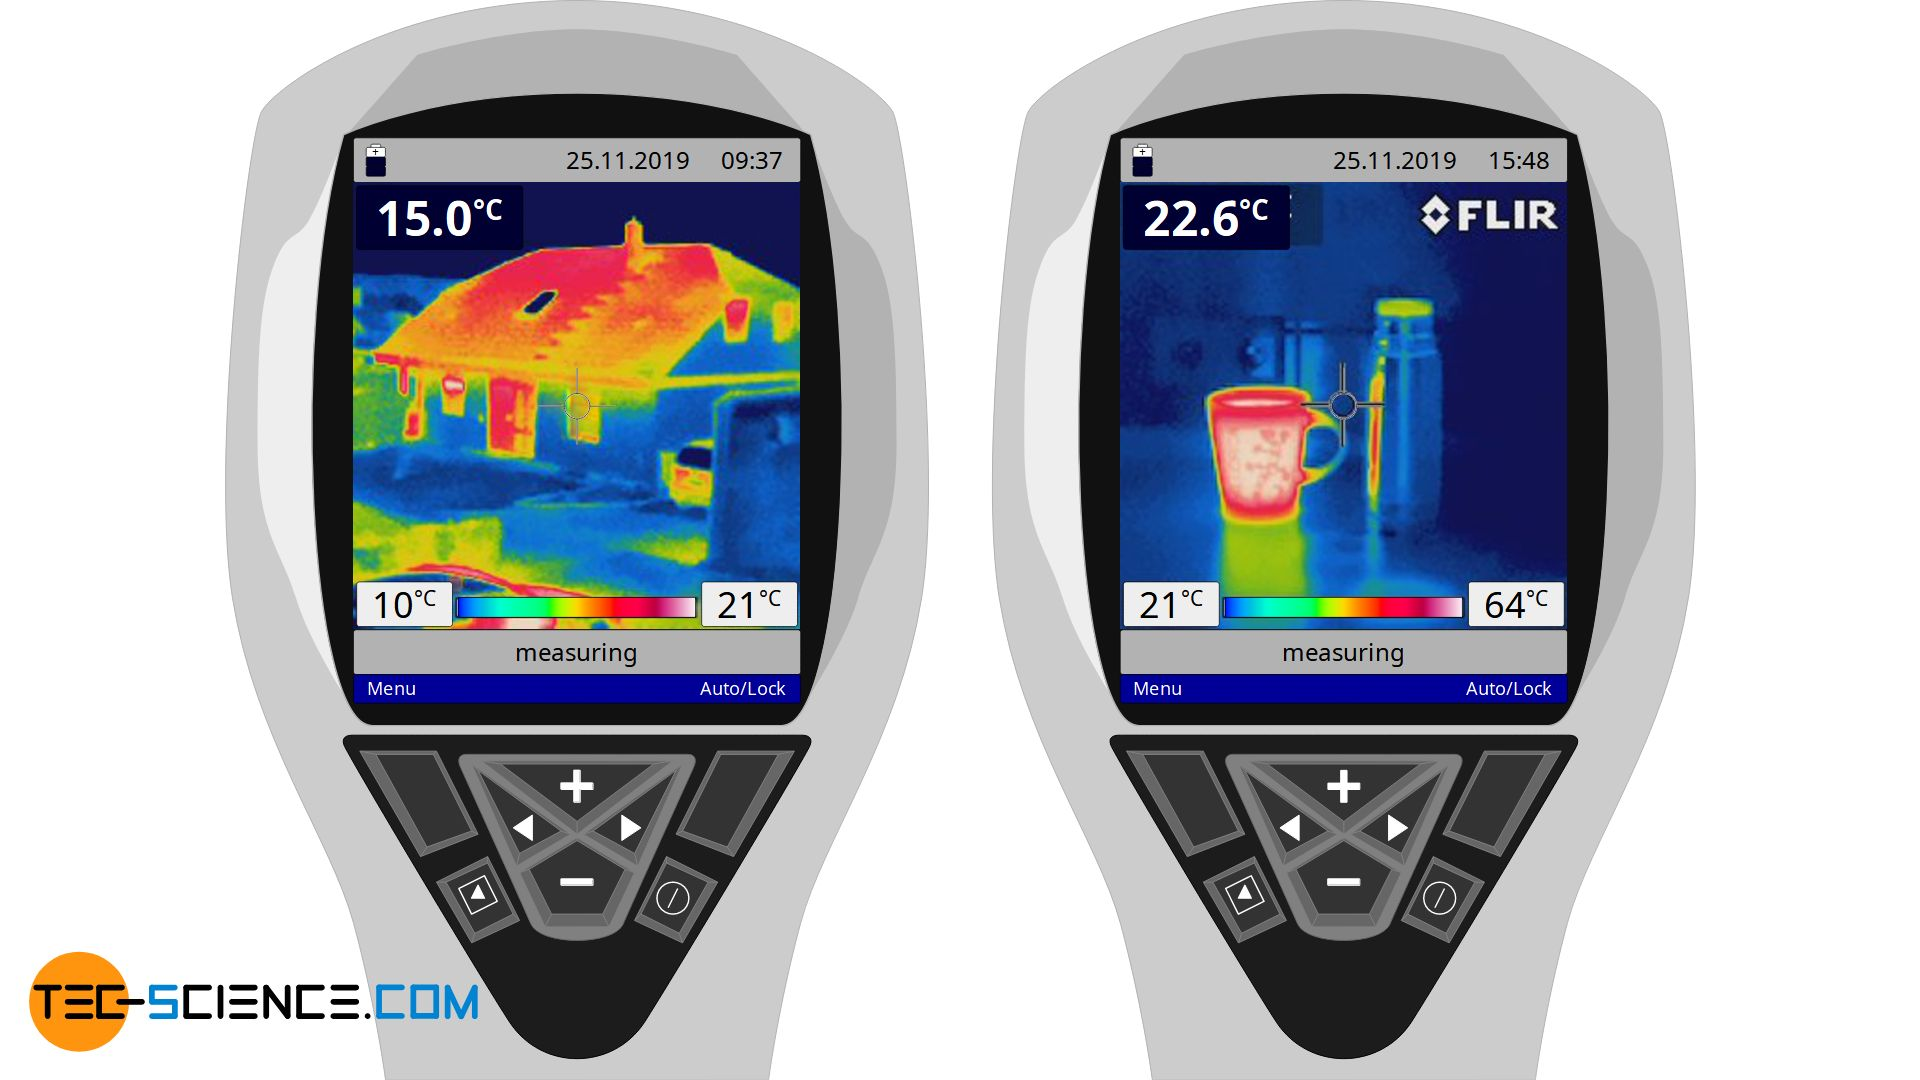 Thermal image of a cup with hot tea and a building